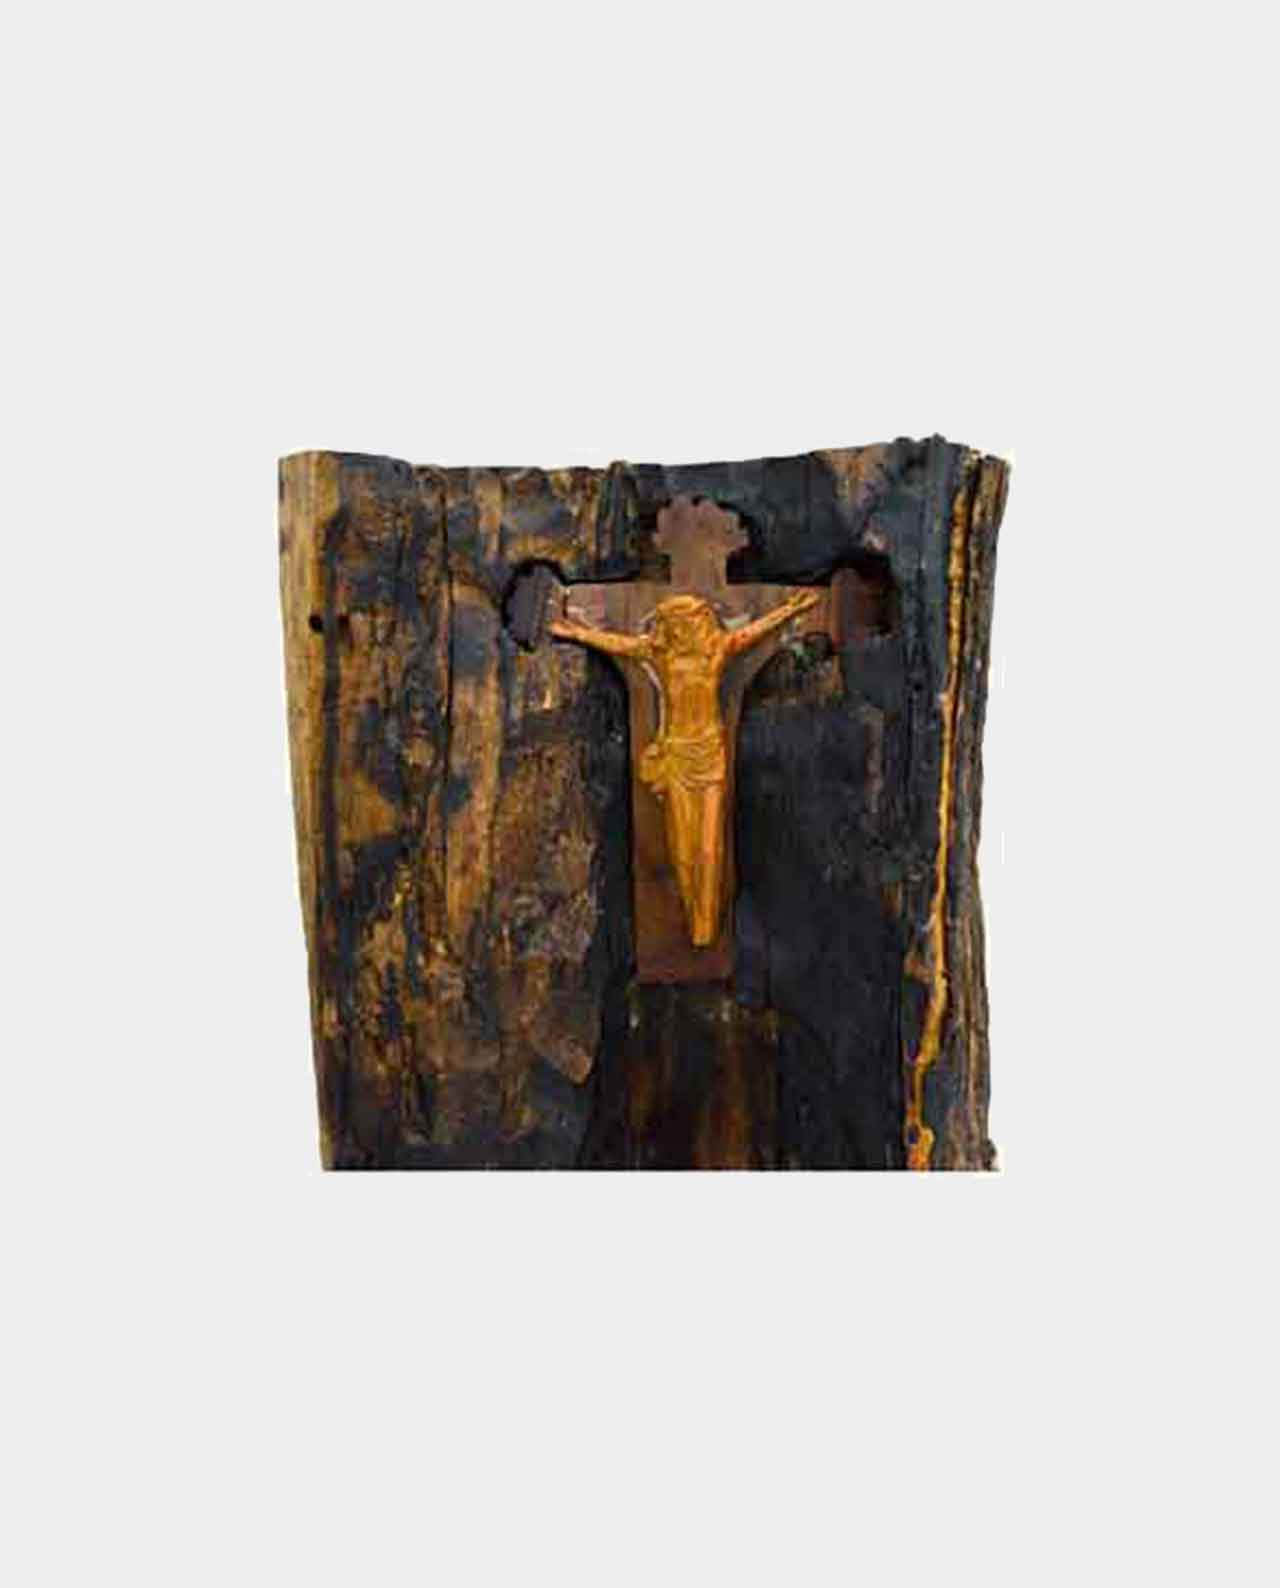 Christ's cross in the form of a Tree trunk Handmade of Asersus wooden 23 cm